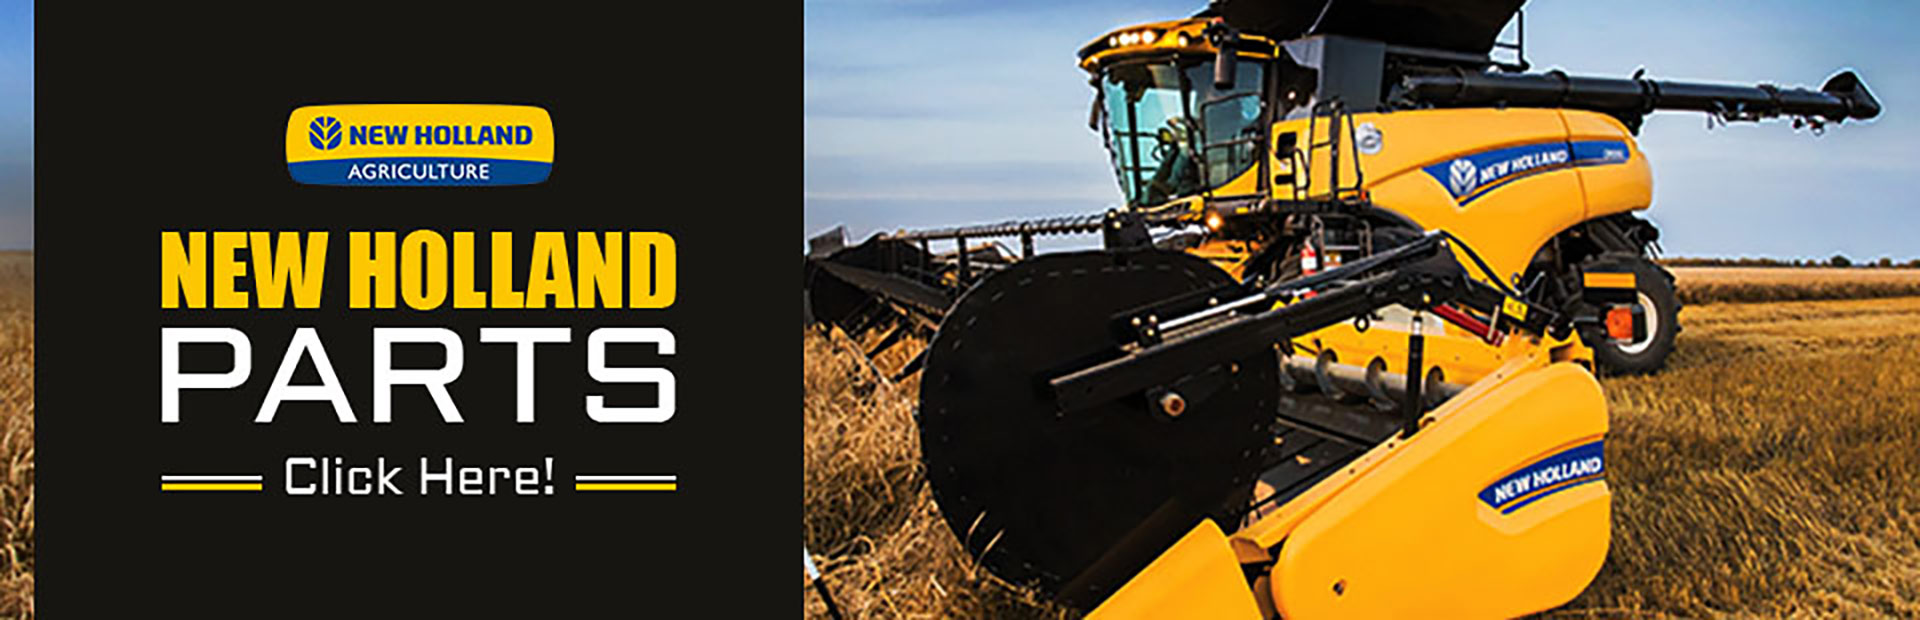 Click here to browse New Holland parts!